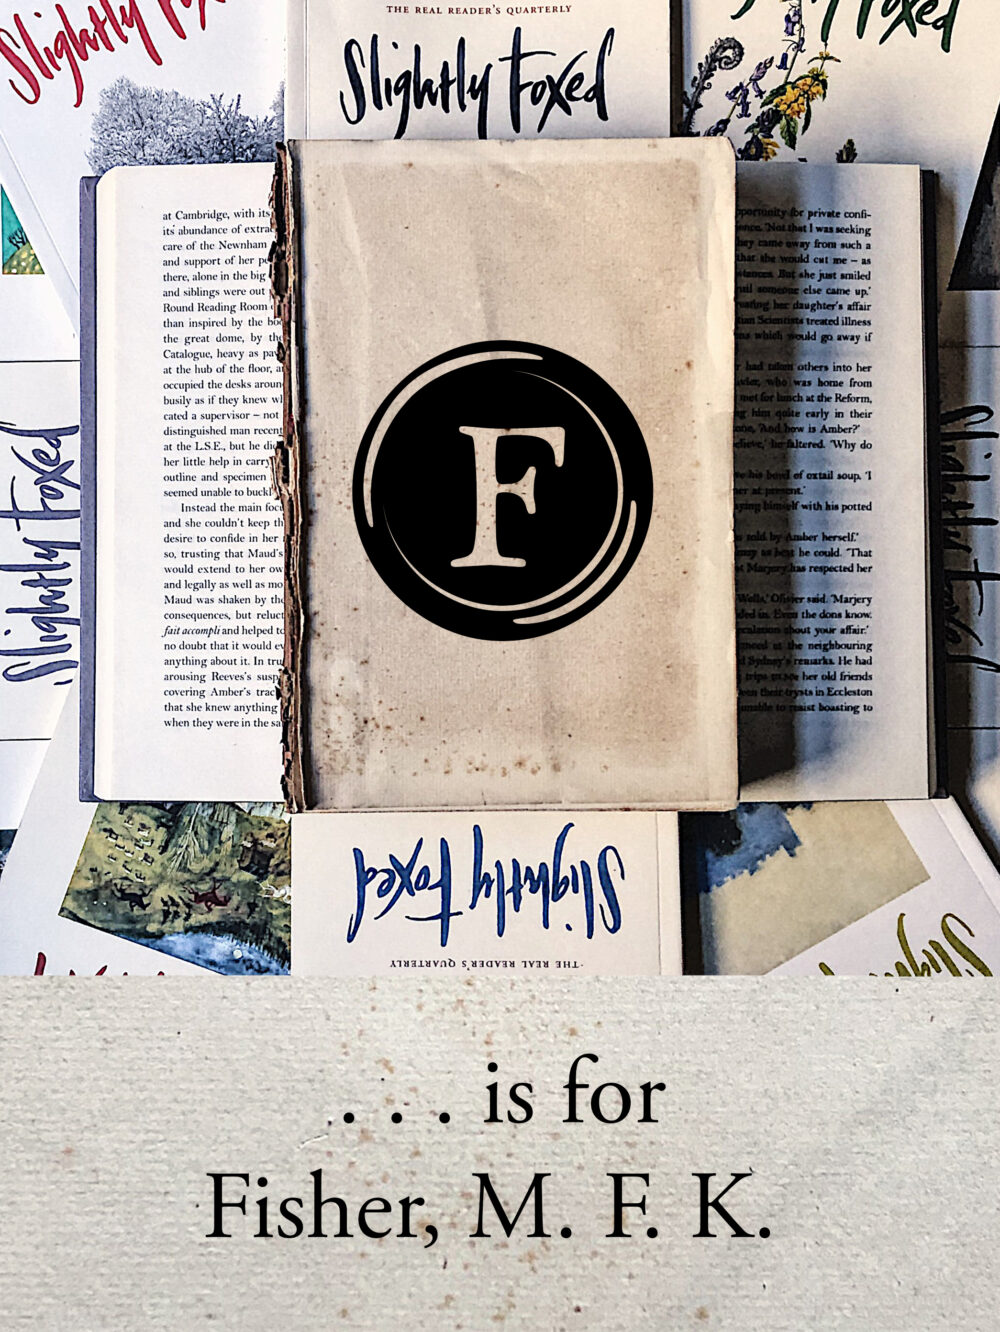 F is for Fisher, M. F. K. | From the Slightly Foxed archives